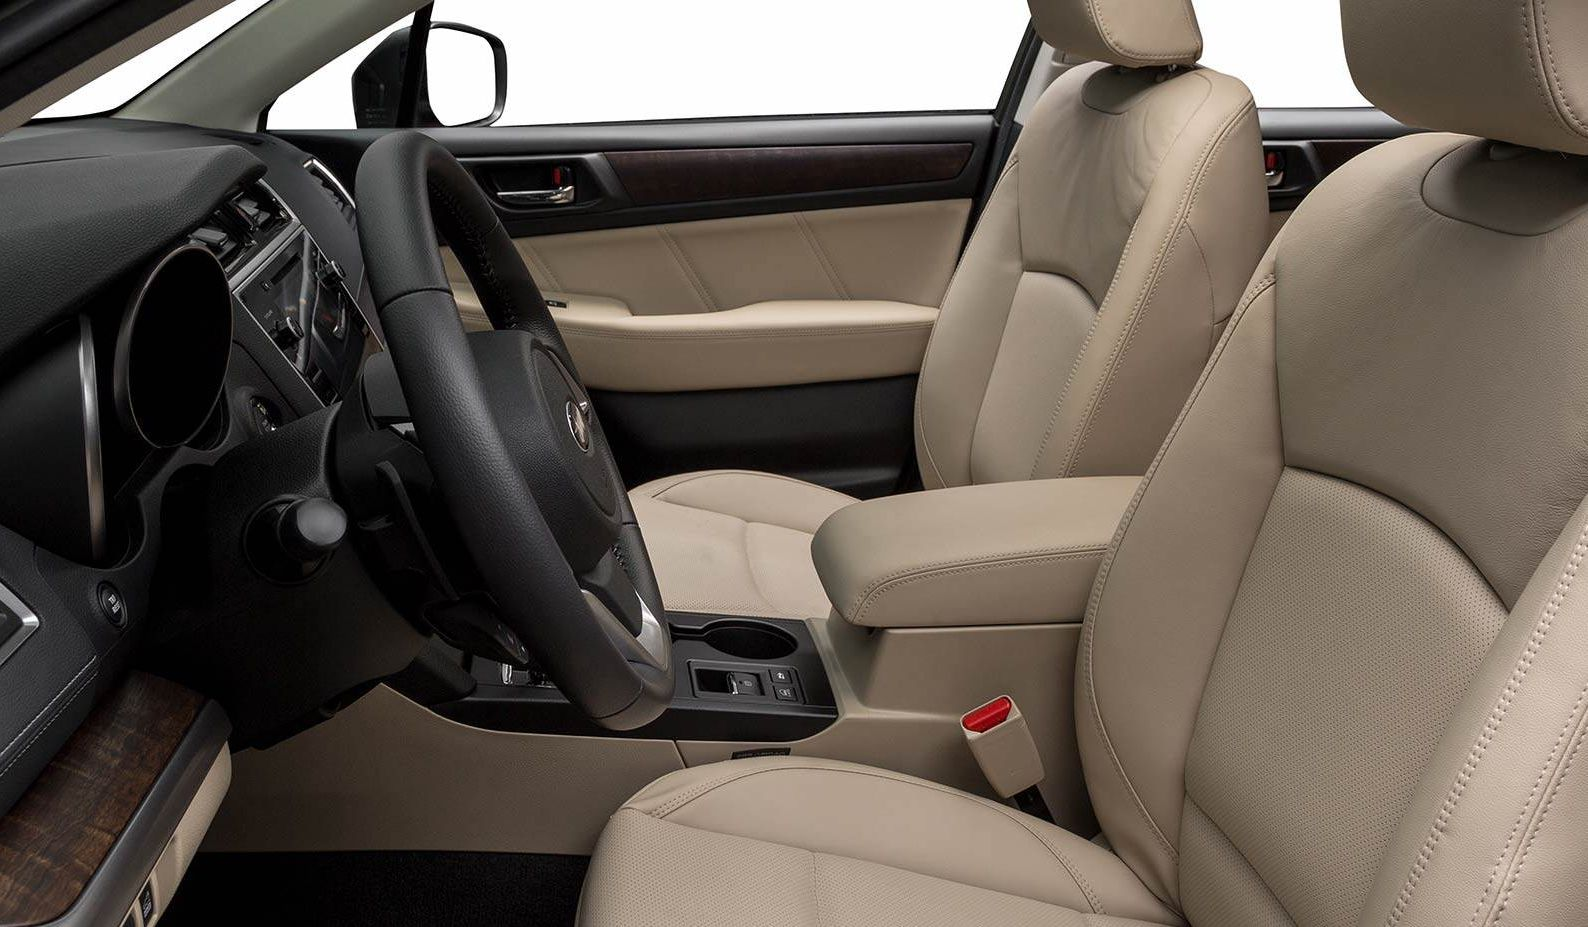 Interior of the 2018 Outback